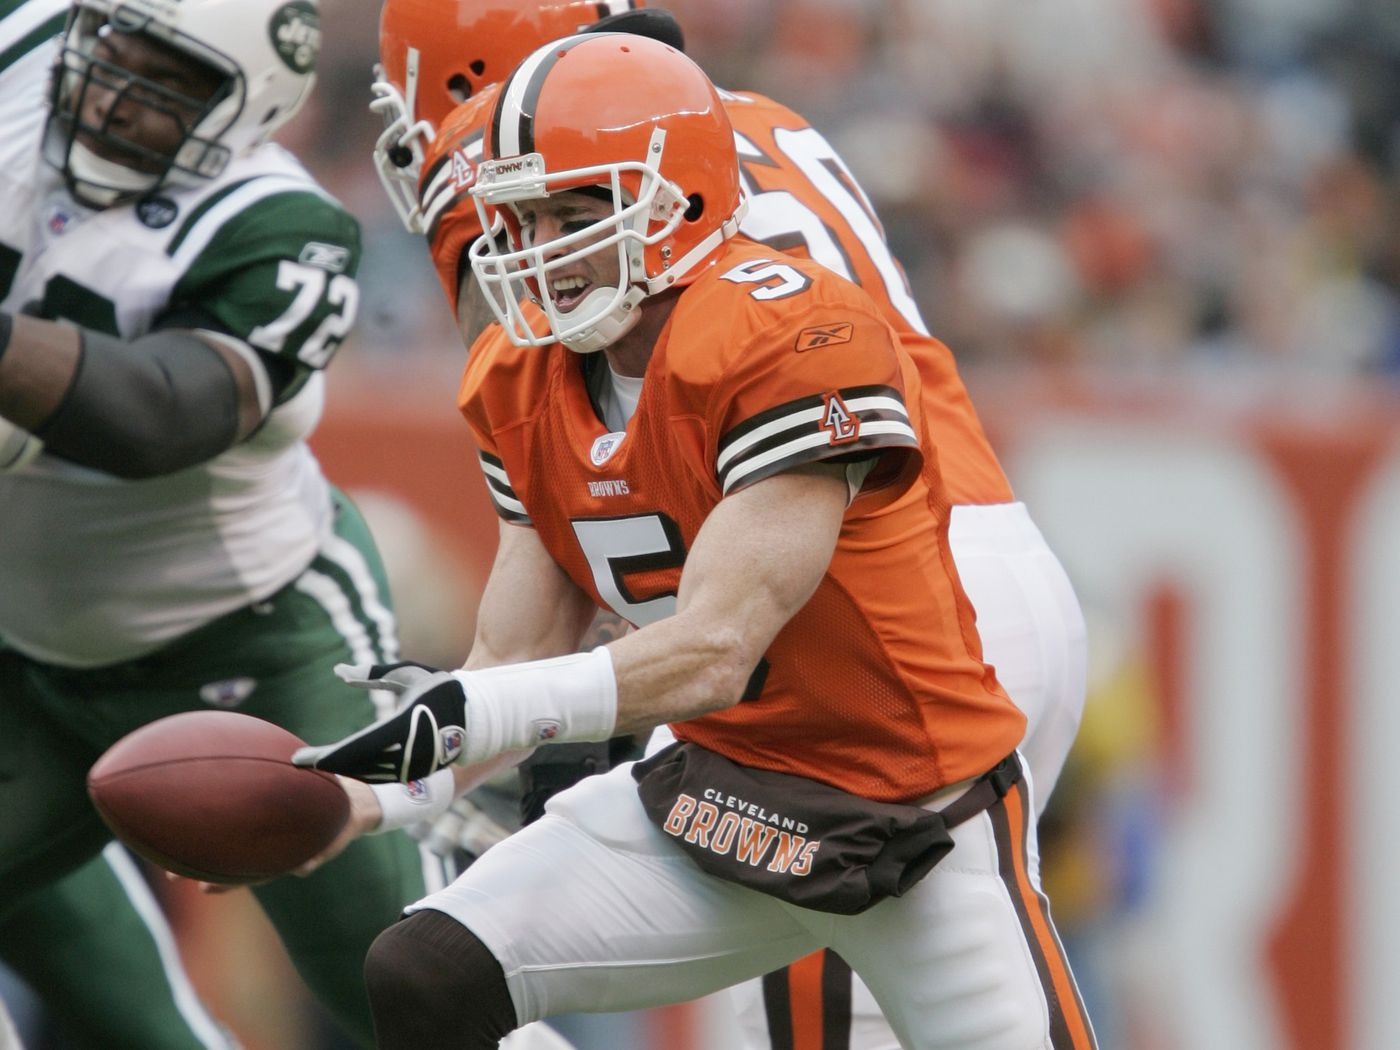 Browns to Wear Orange Jerseys This Sunday for the First Time Since ...